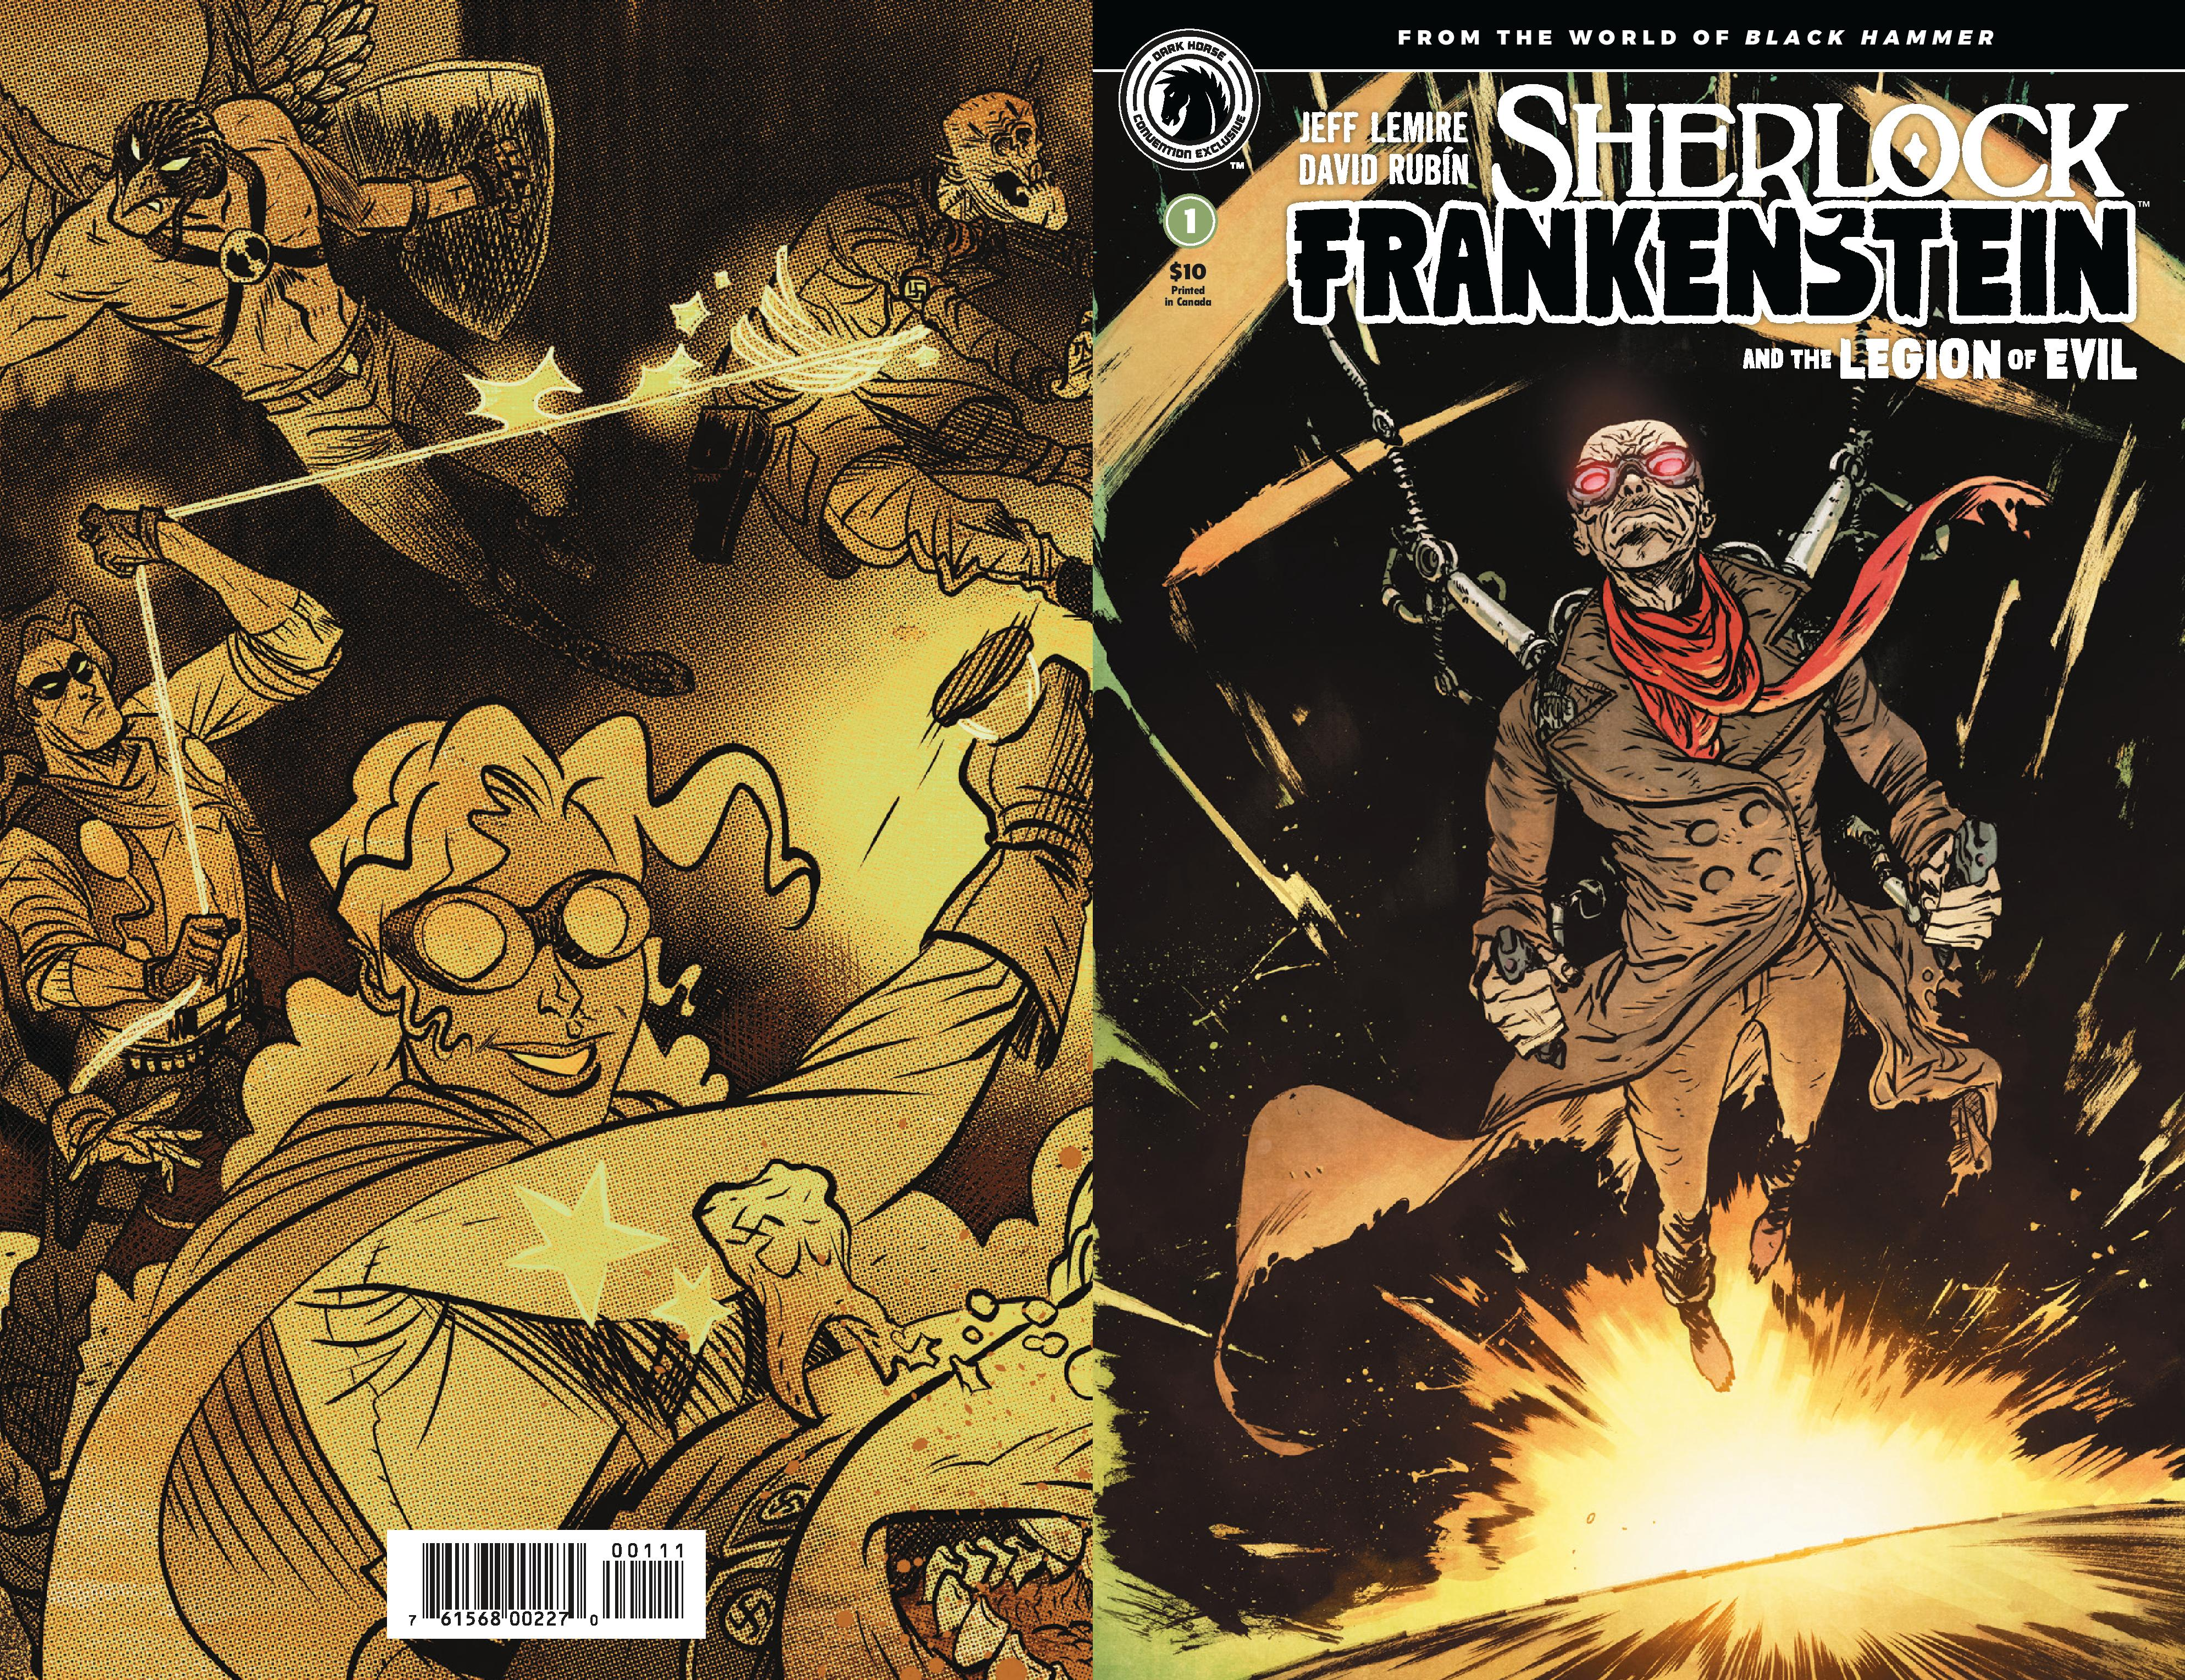 At NYCC Dark Horse Comics Will Have A Sherlock Frankenstein Wraparound Variant Cover By Daniel Warren Johnson Of Extremity For 10